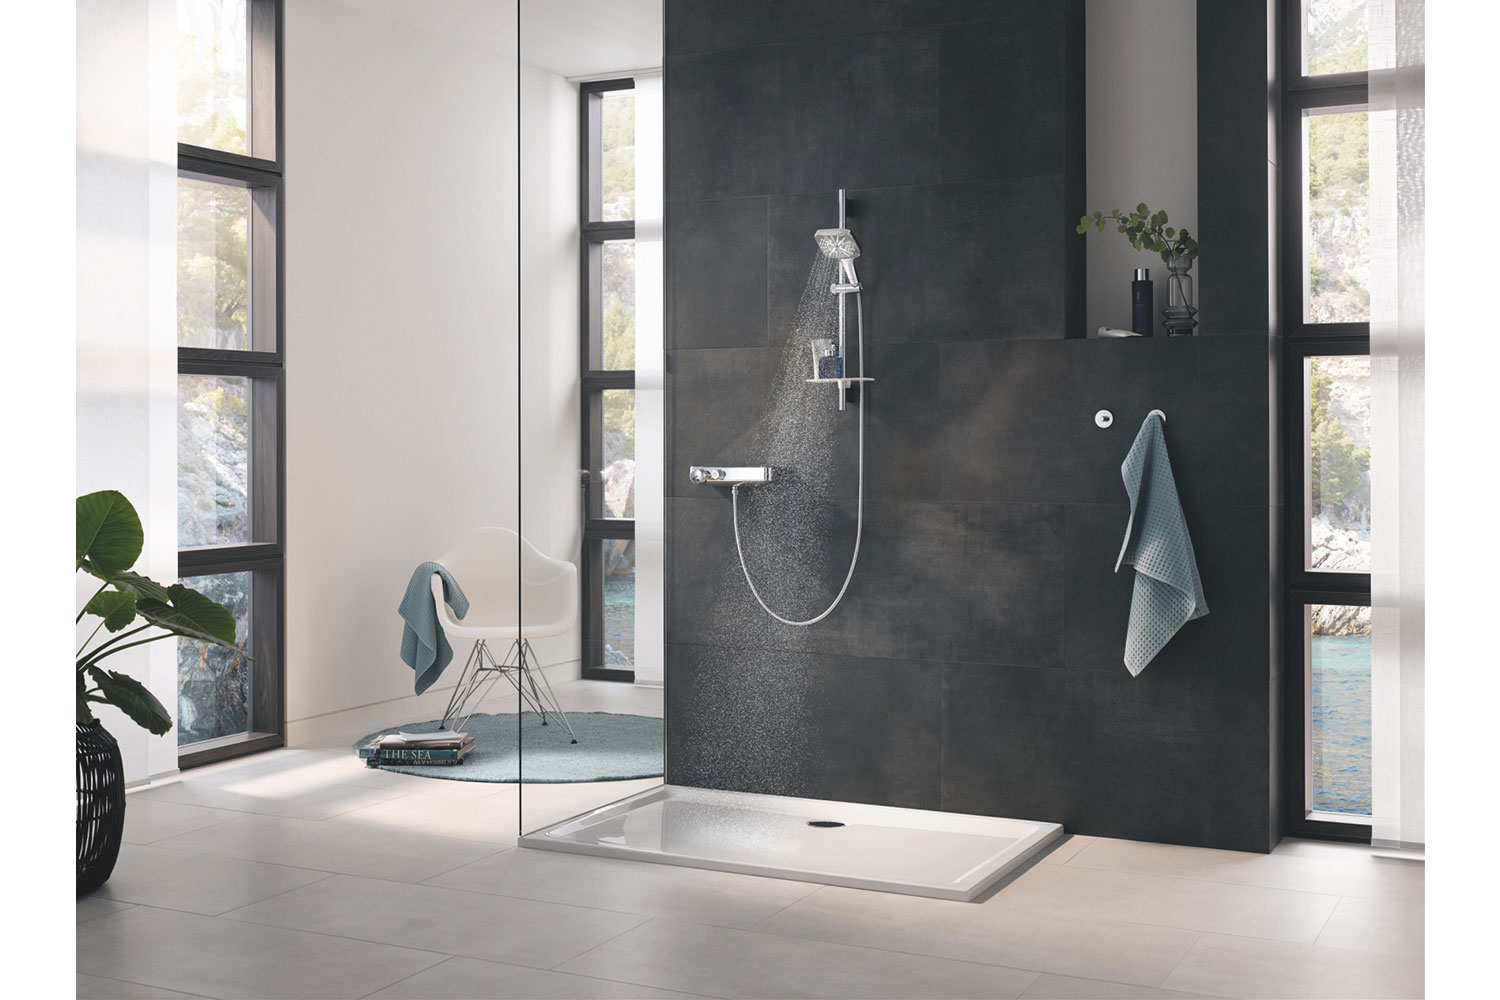 With the new GROHE Rainshower SmartActive hand shower, the perfect shower experience is just a click away